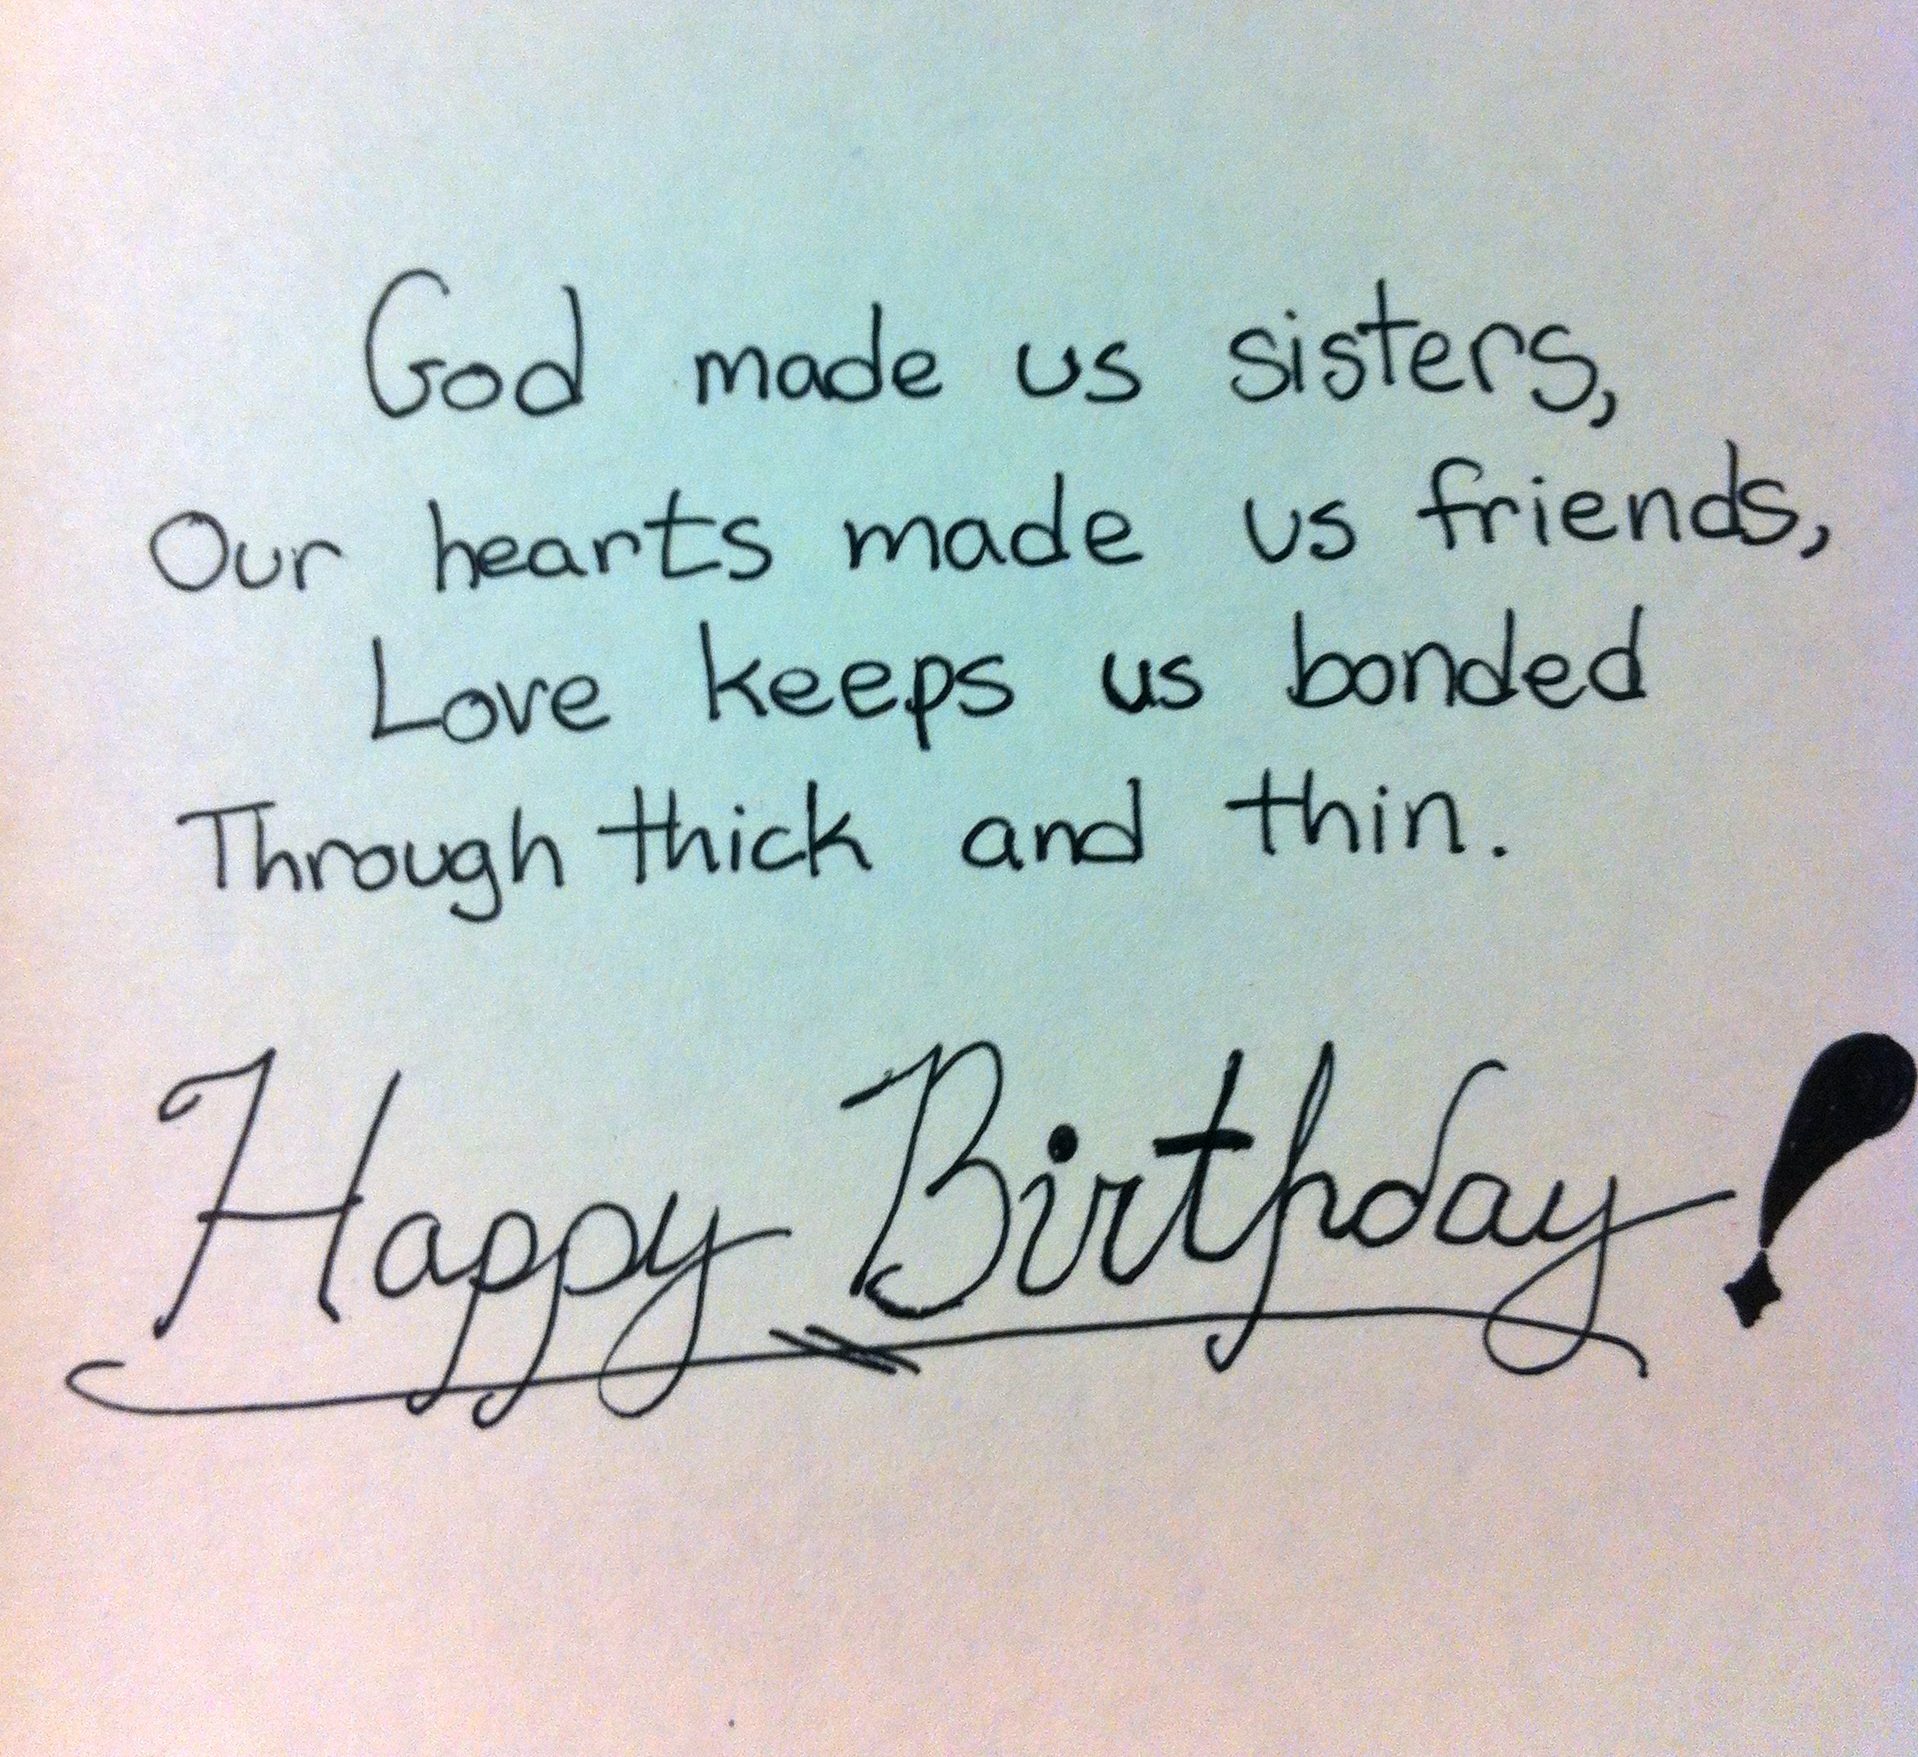 Best Birthday Wishes For A Sister – StudentsChillOut